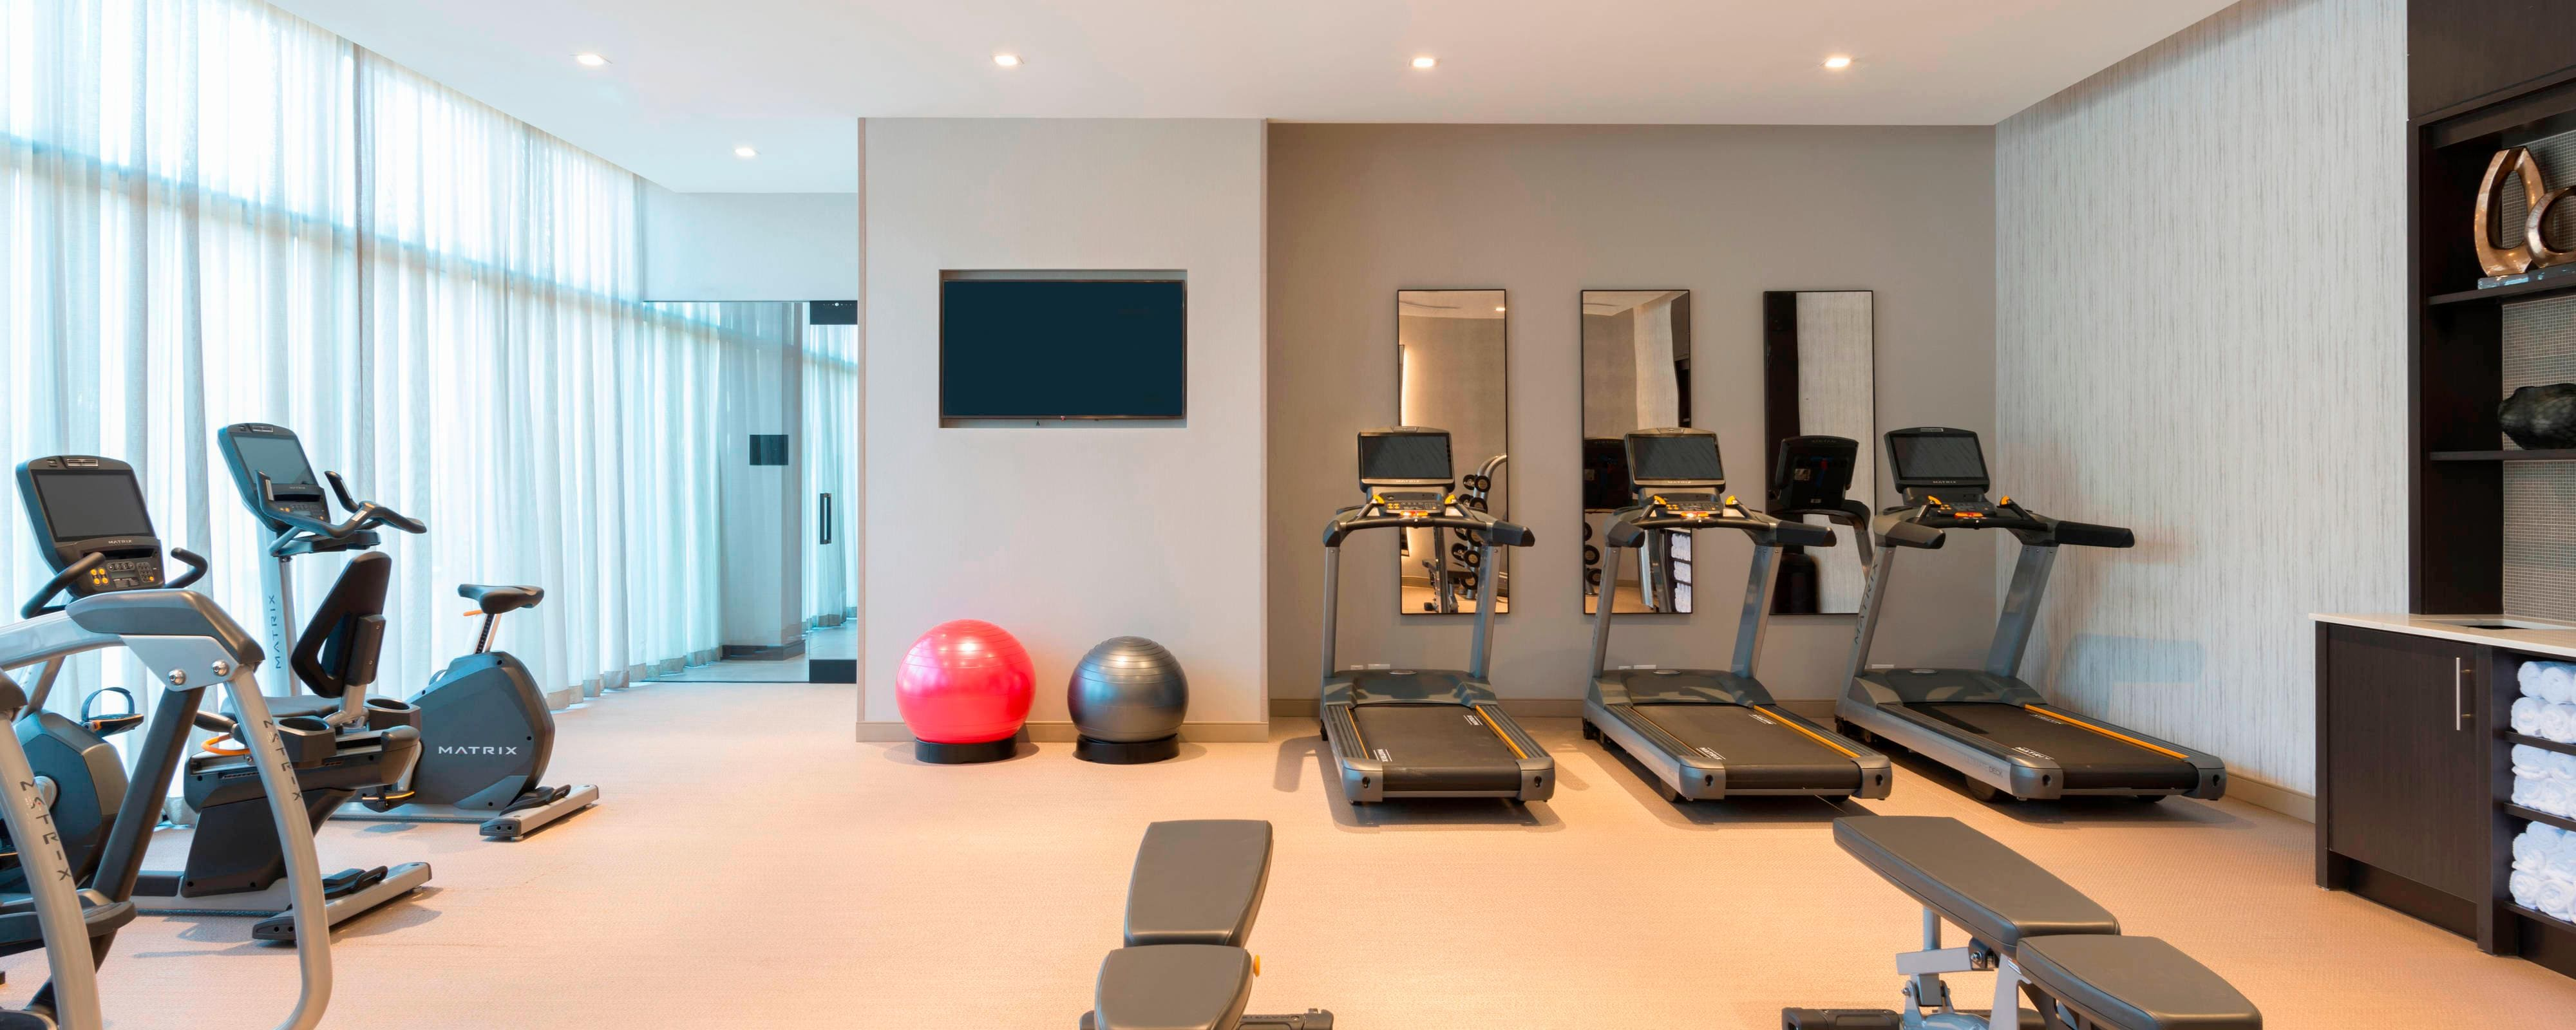 Hotel Gym In Boston - Recreation Activities At The Ac